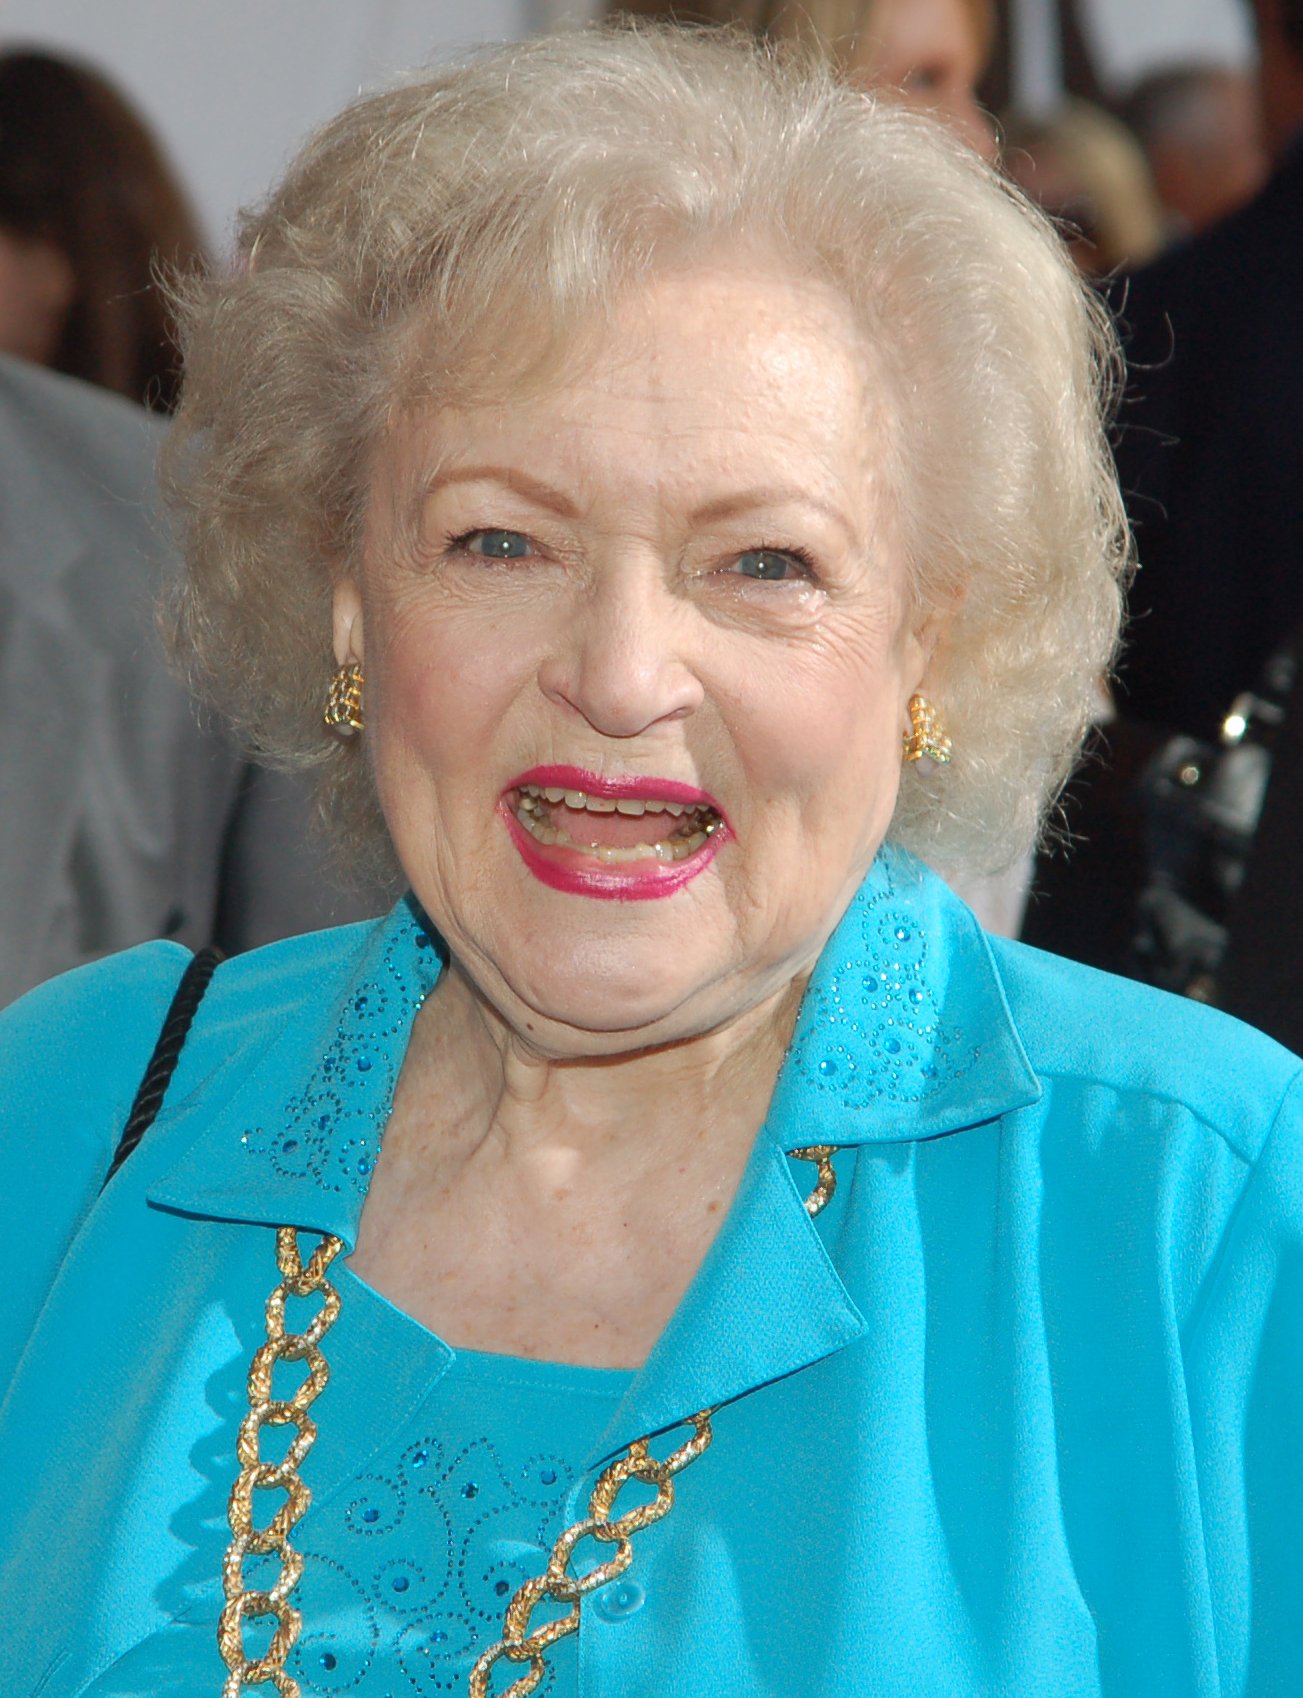 Bettywhitejune Wikipedia The Free Encyclopedia